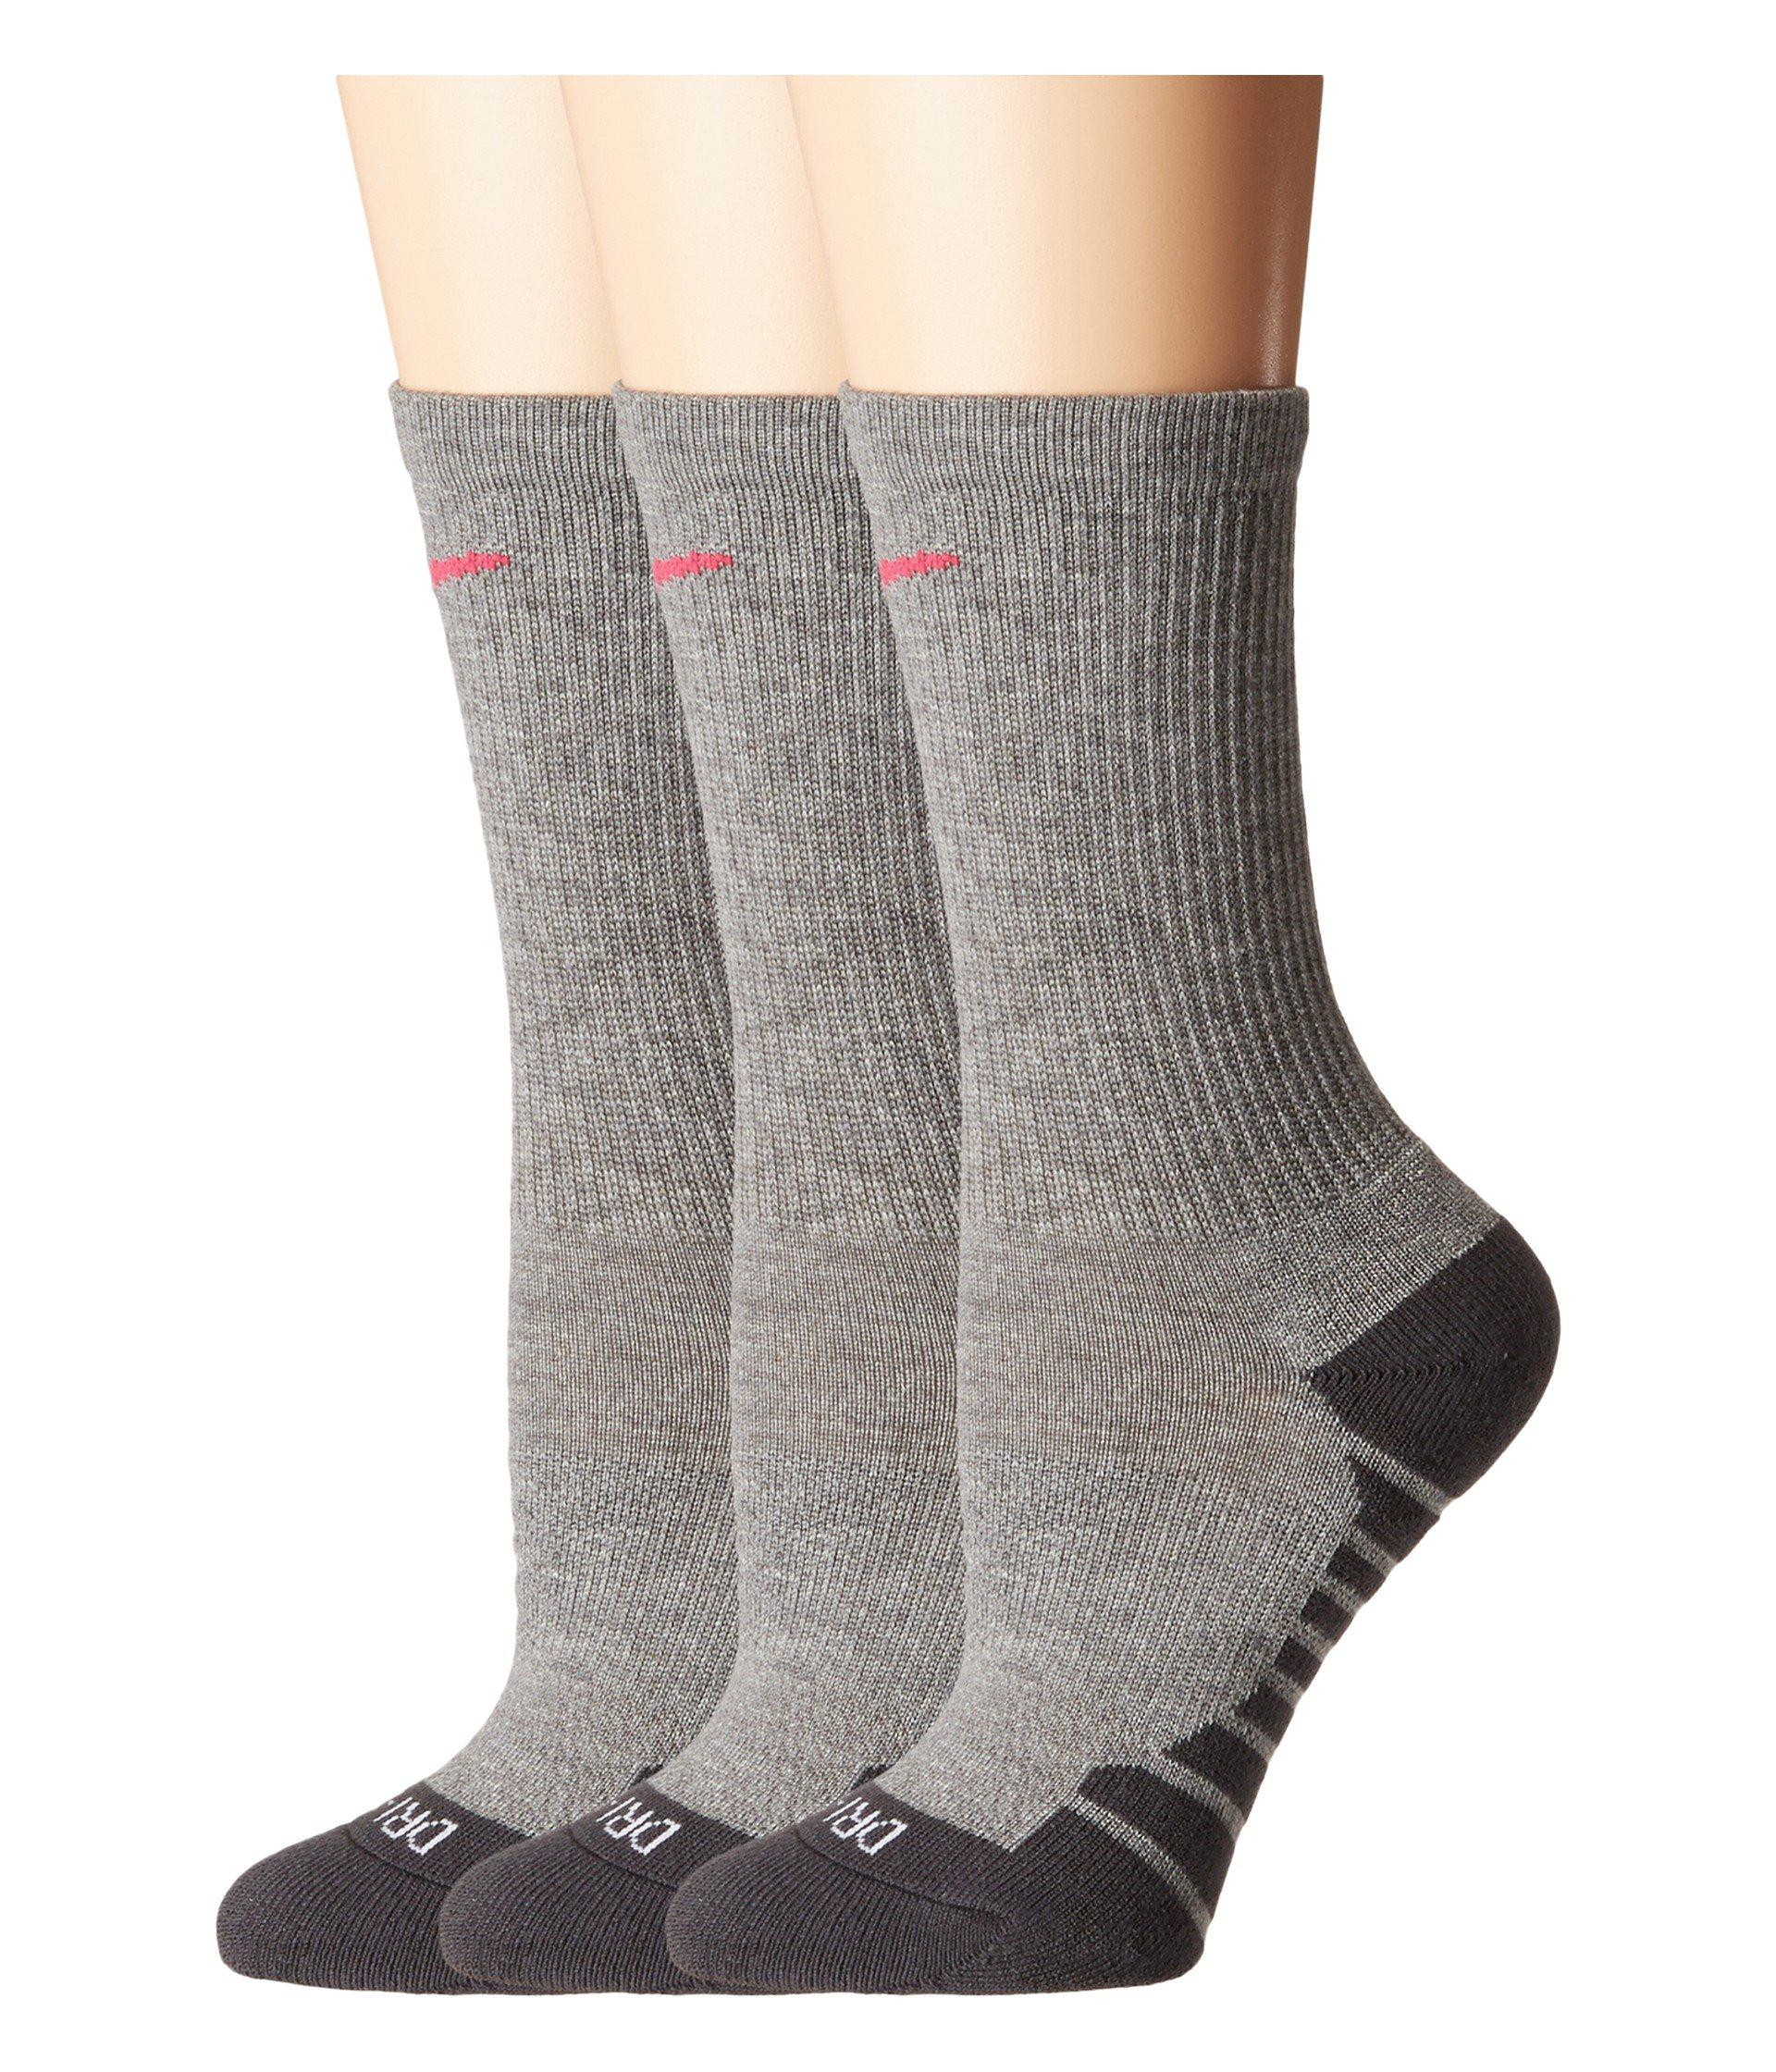 Quiksilver Women/'s Pack of 3 Crew Sports Trainer Cushion Socks